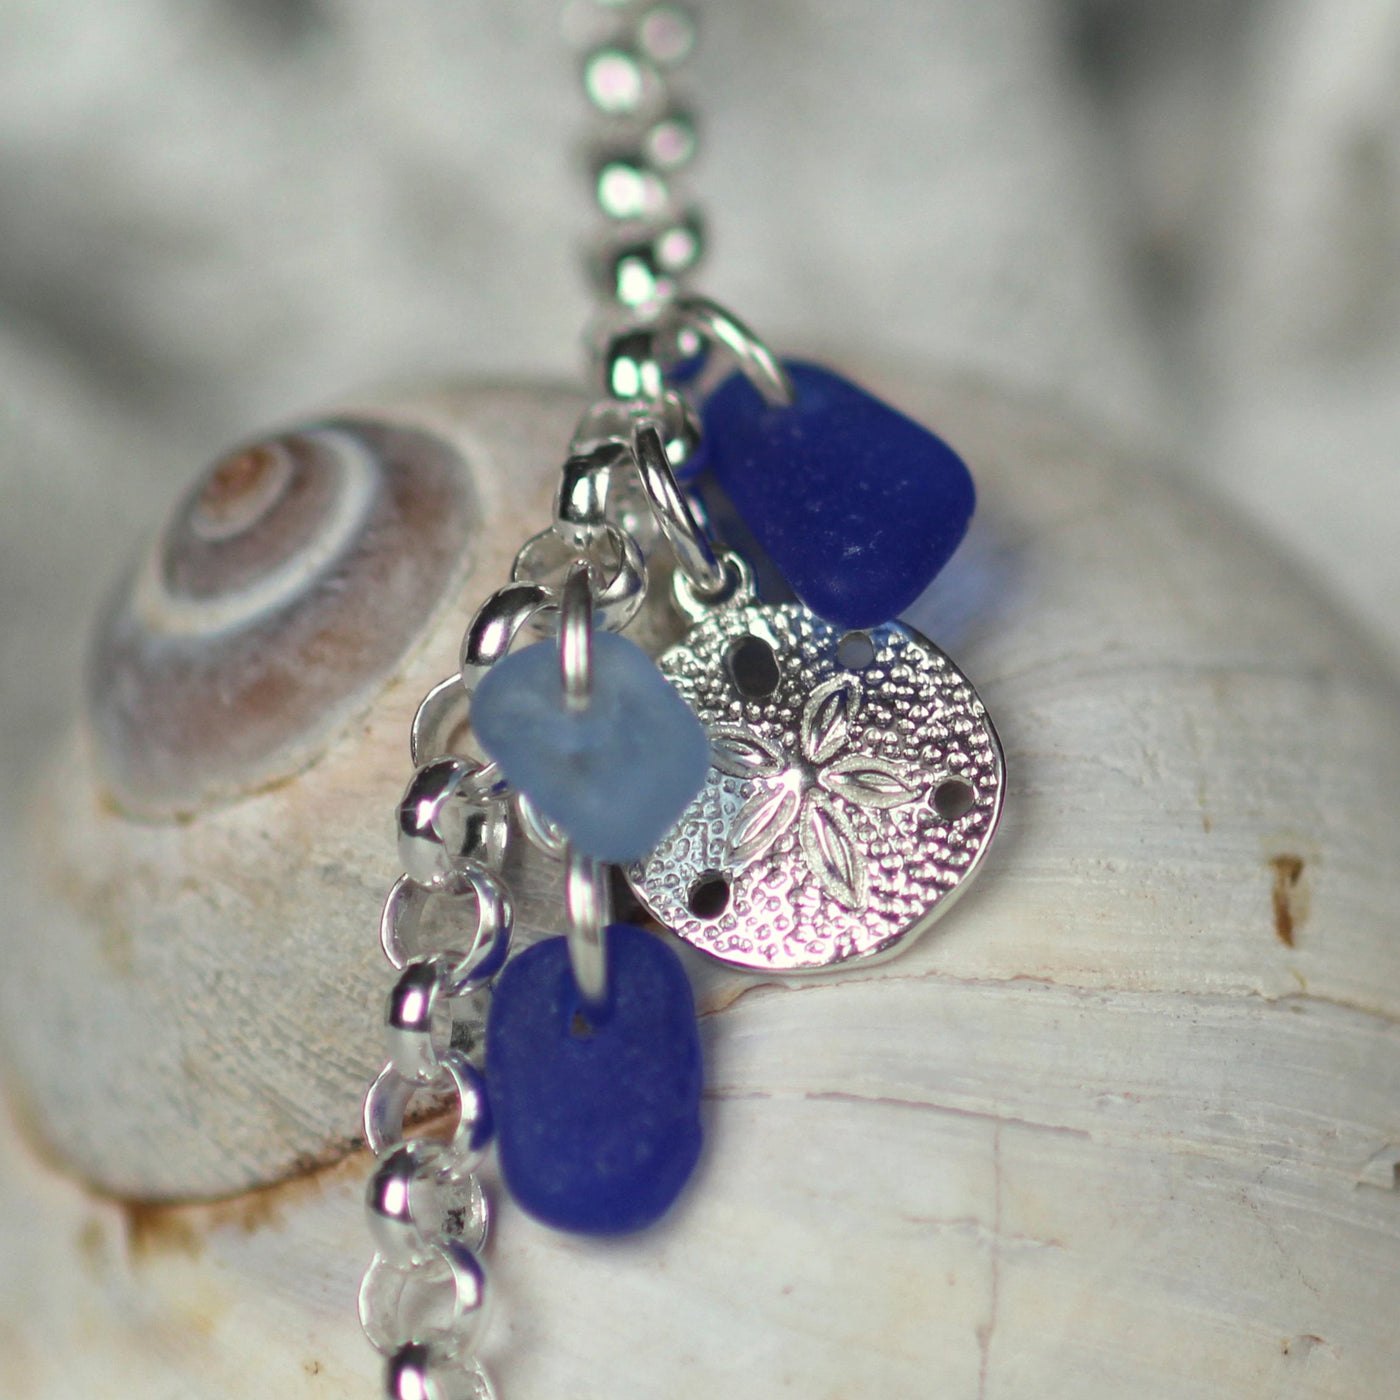 Sea Glass Bracelet, mom gift,  sand dollar bracelet, sea glass jewelry, graduation gift for her, nova scotia, cobalt blue bracelet